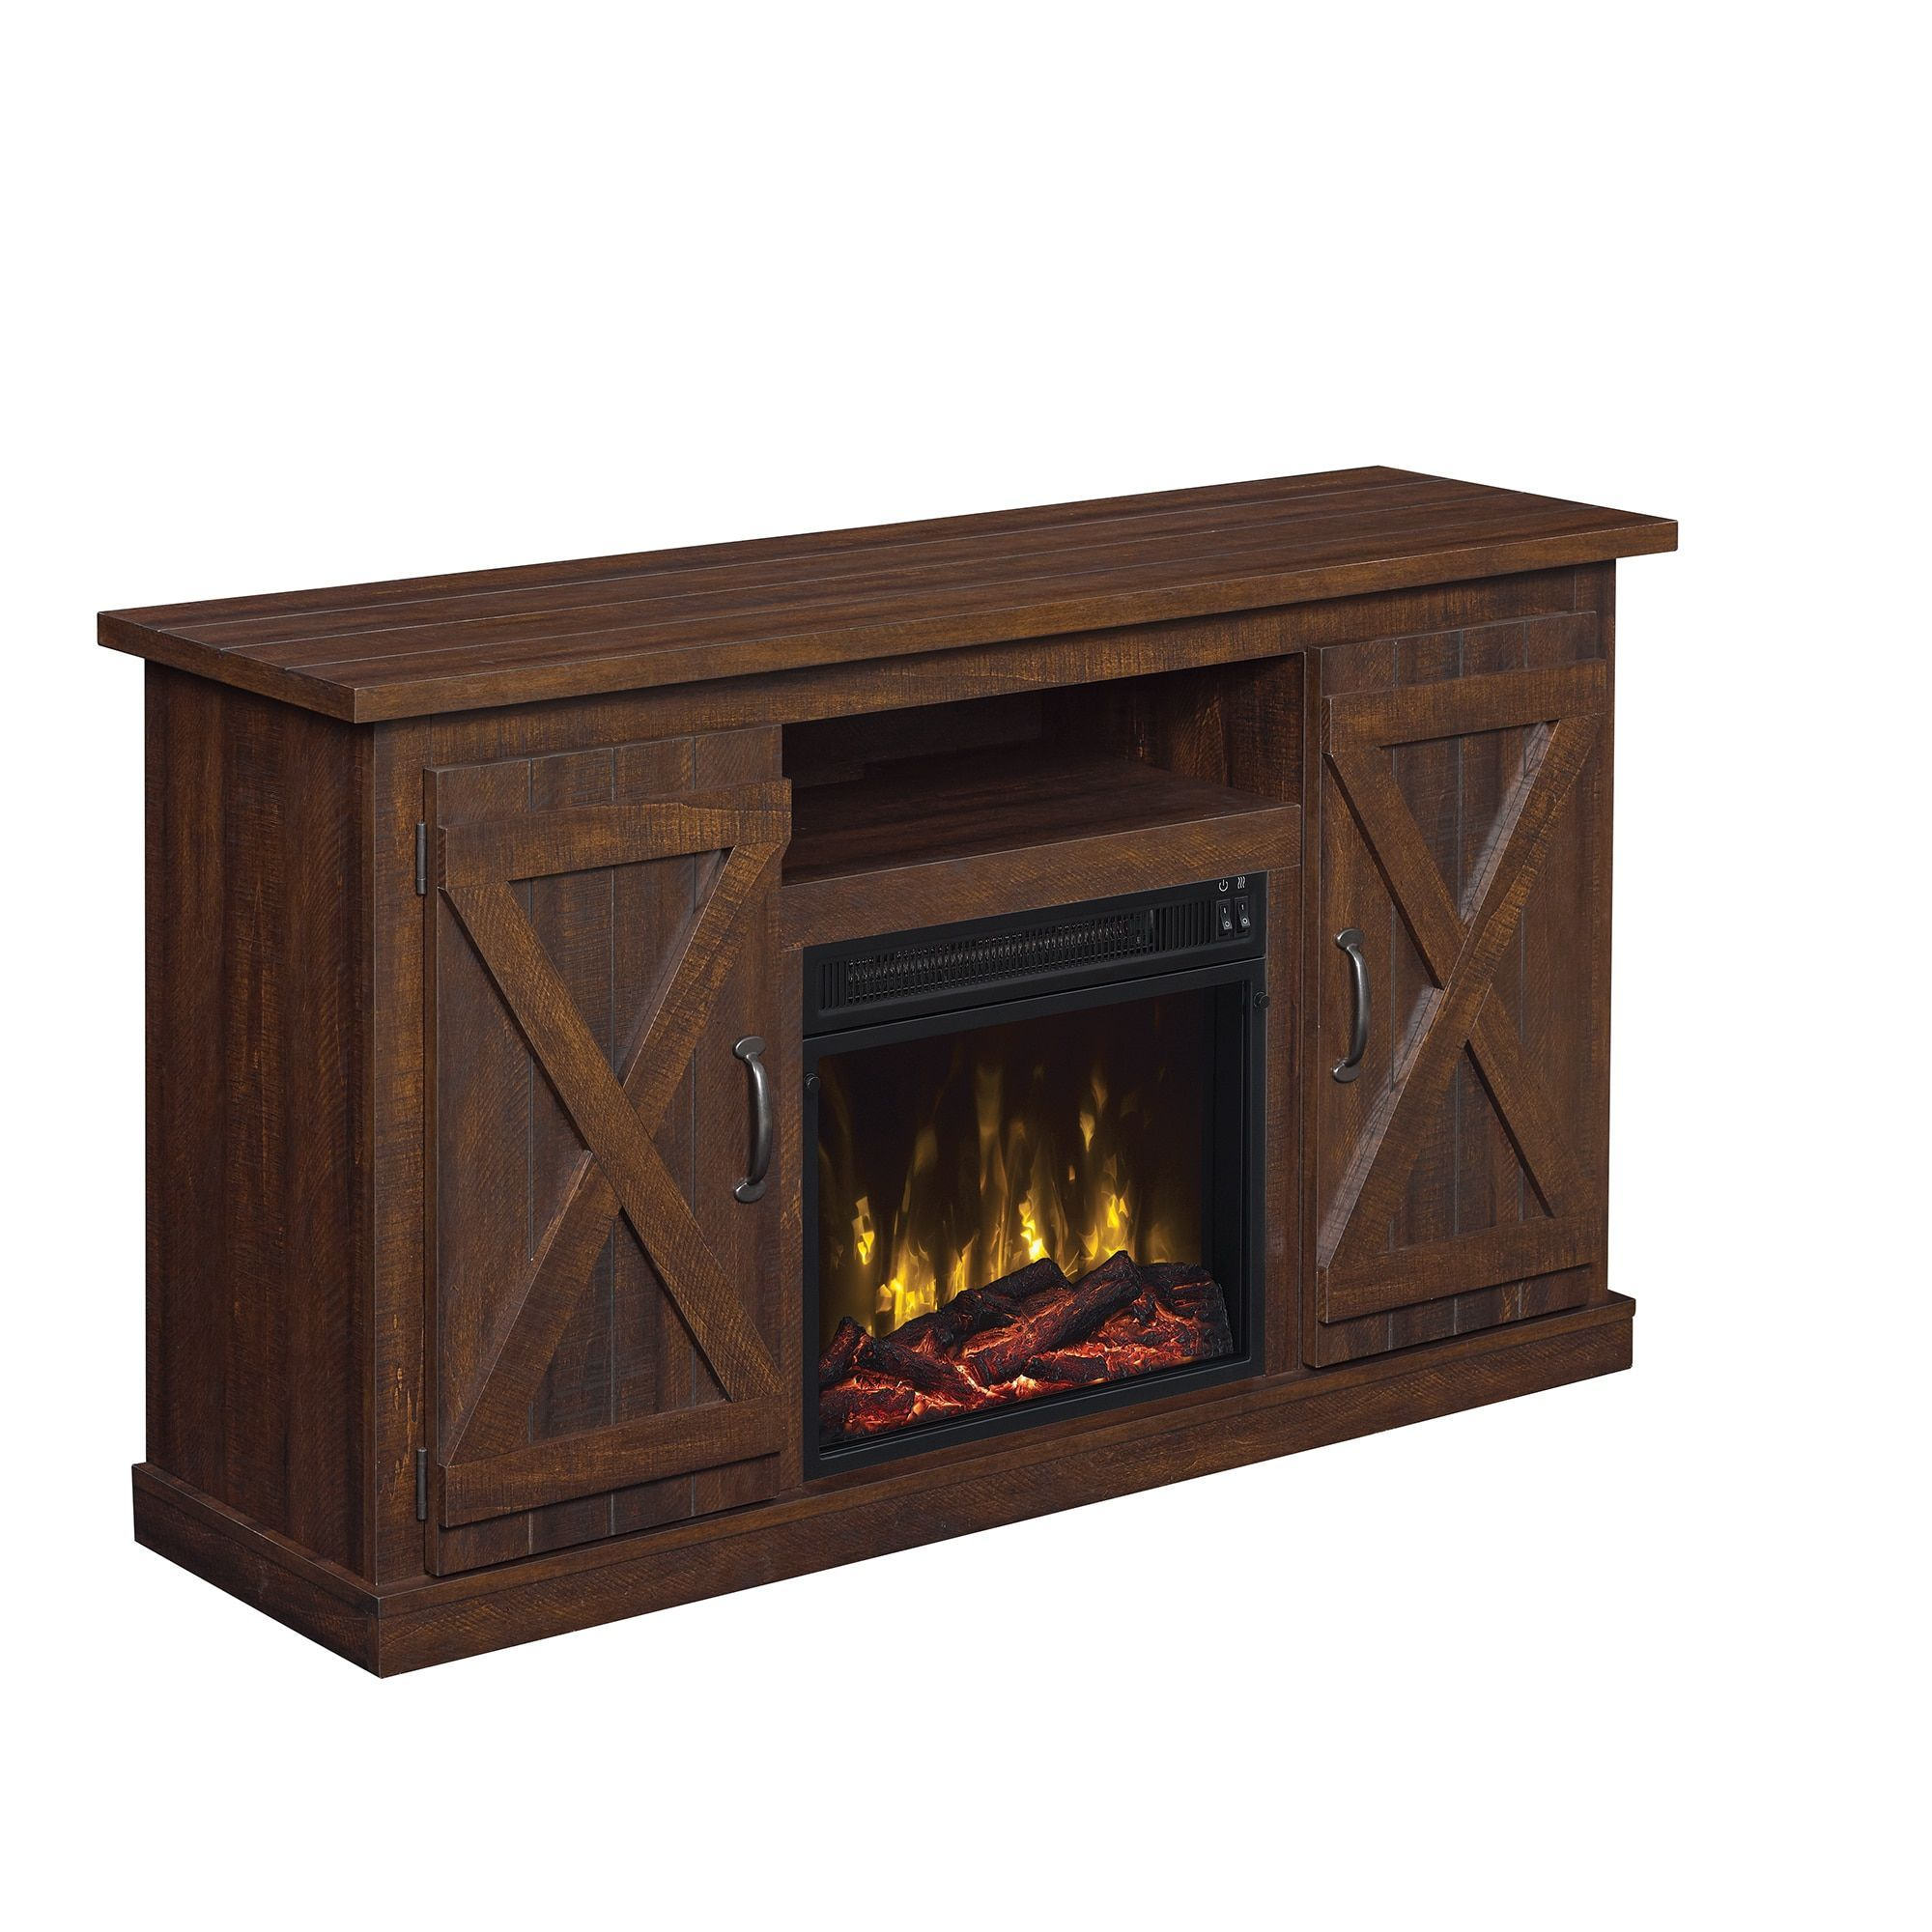 cottonwood tv stand for tvs up to 55 inches with electric fireplace